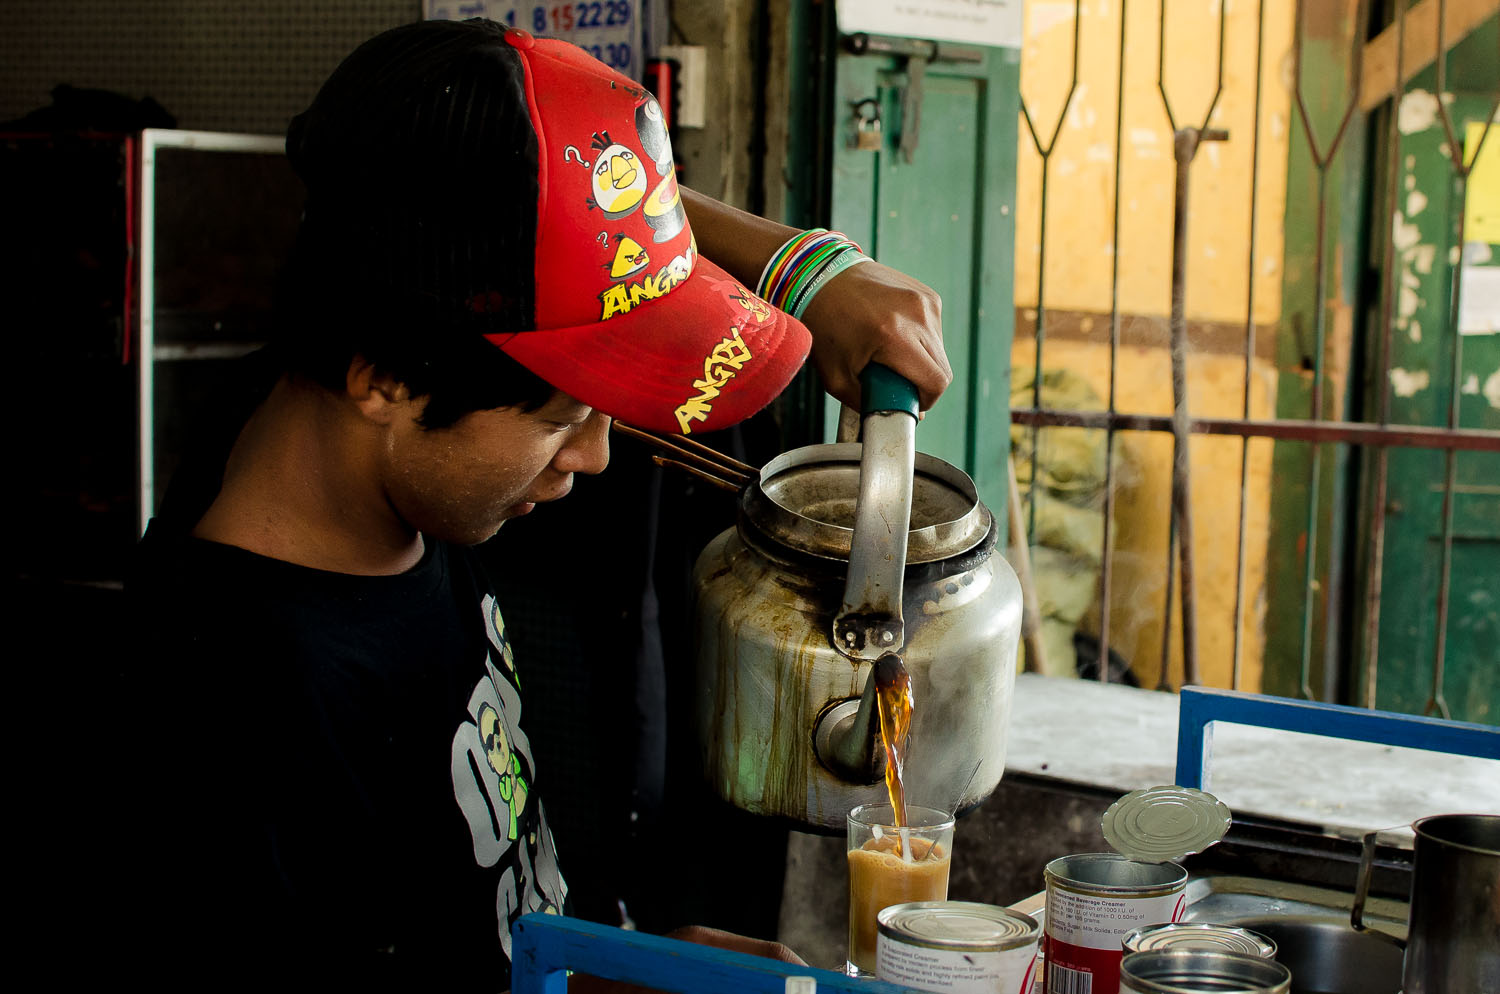 Down to a science. Tea masterMg Naing churns out glasses of laphet-yeh with fluidity and style.  (c) Dustin Main 2013